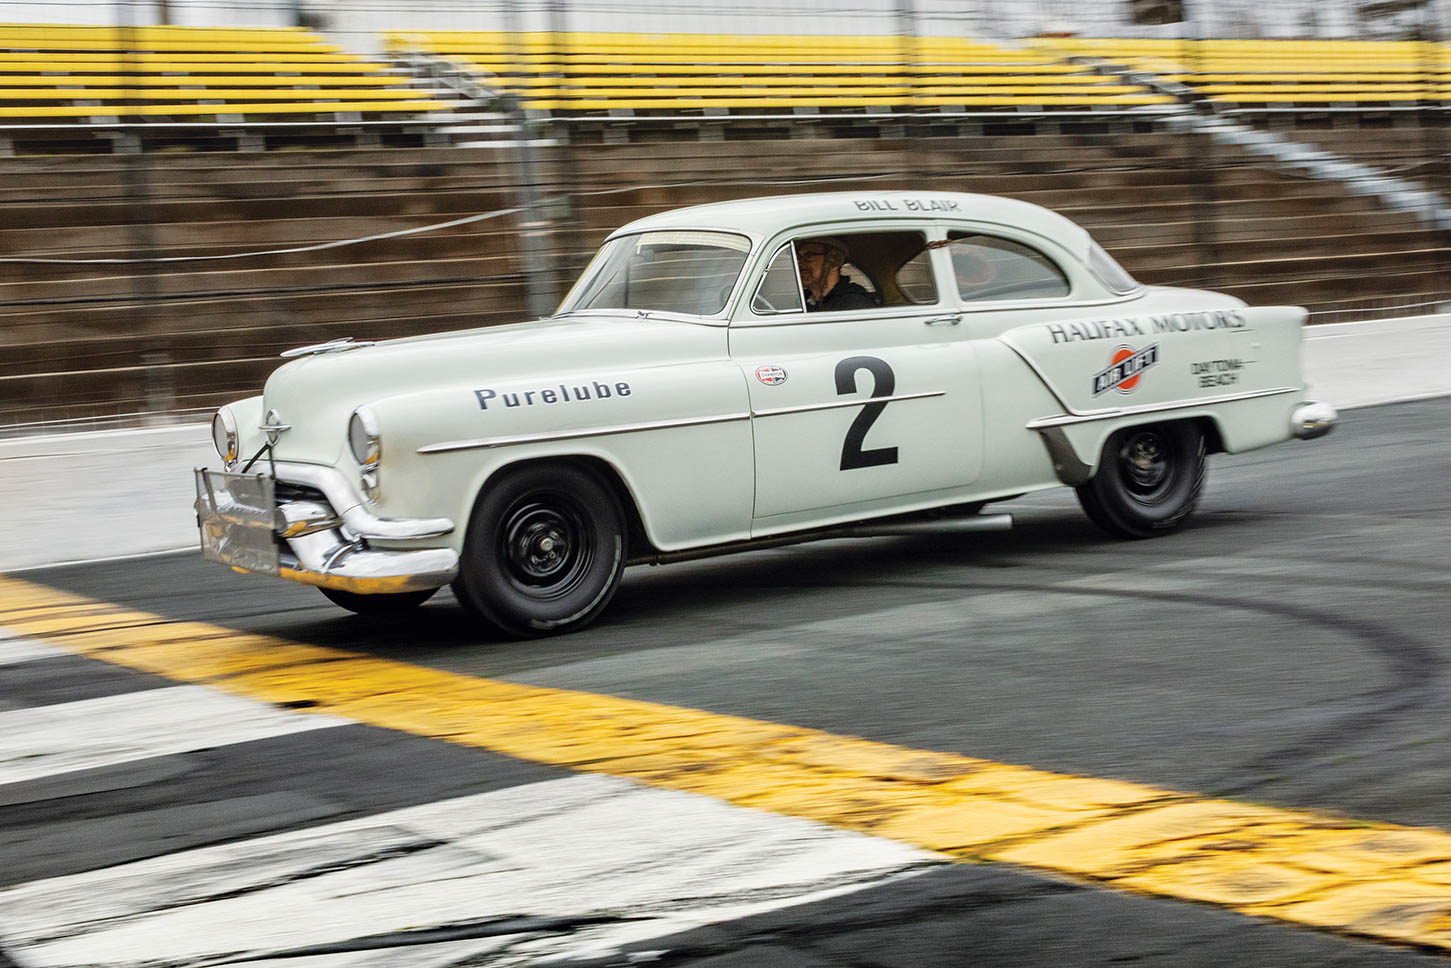 """Bill Blair, Jr.'s, replica of the """"special equipment"""" Olds his daddy raced at Daytona in 1953 is complete down to the leather dog collars holding the doors closed."""